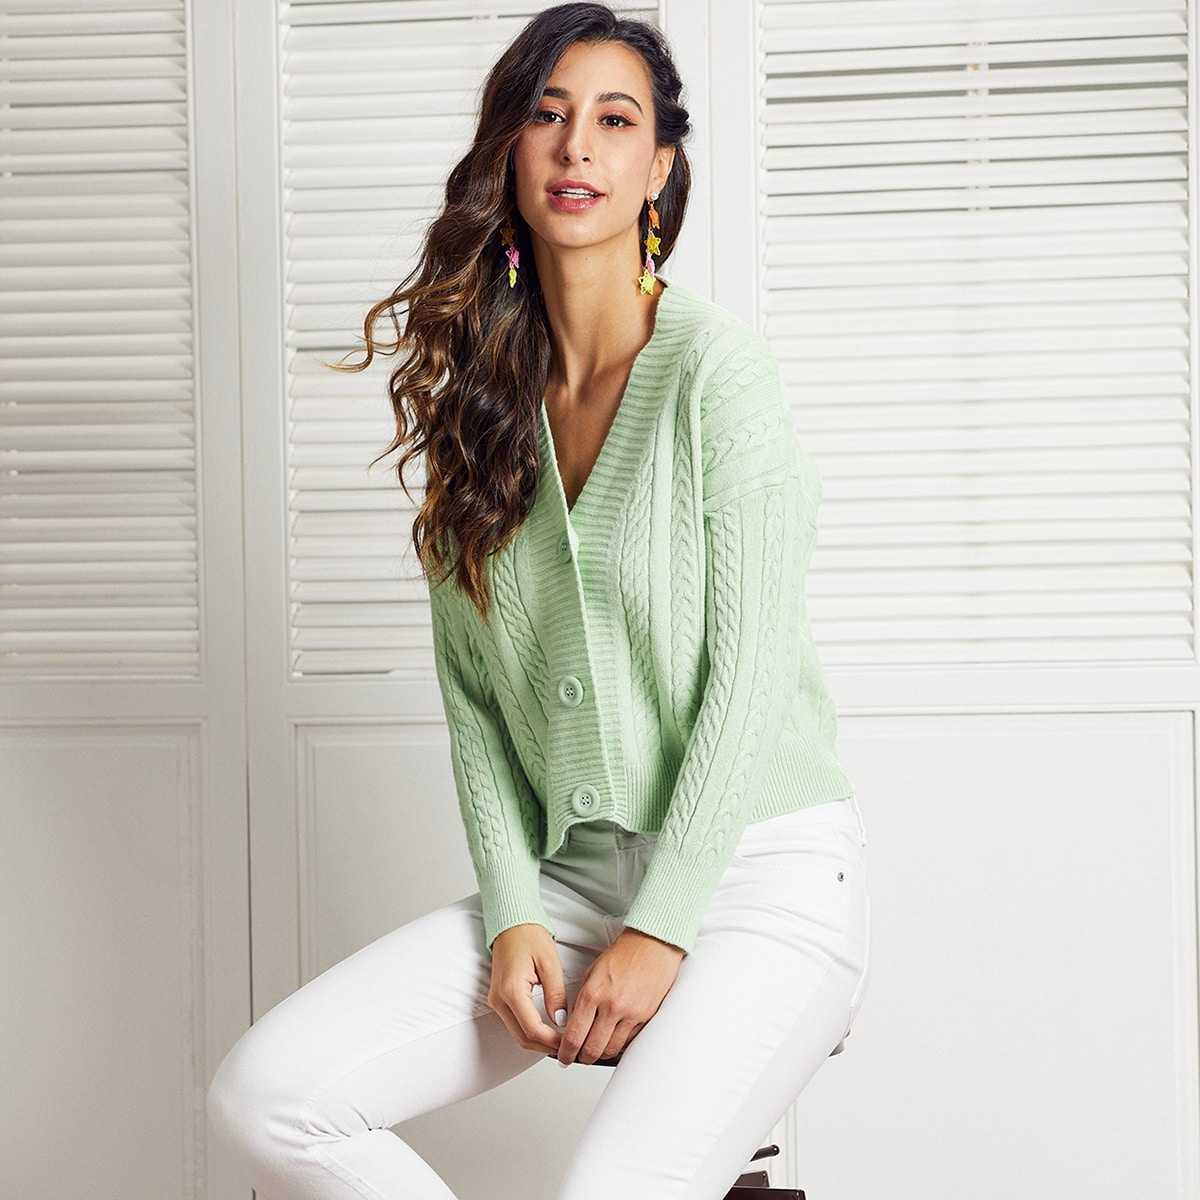 SBetro Drop Shoulder Cable Knit Cardigan in Green Pastel by ROMWE on GOOFASH